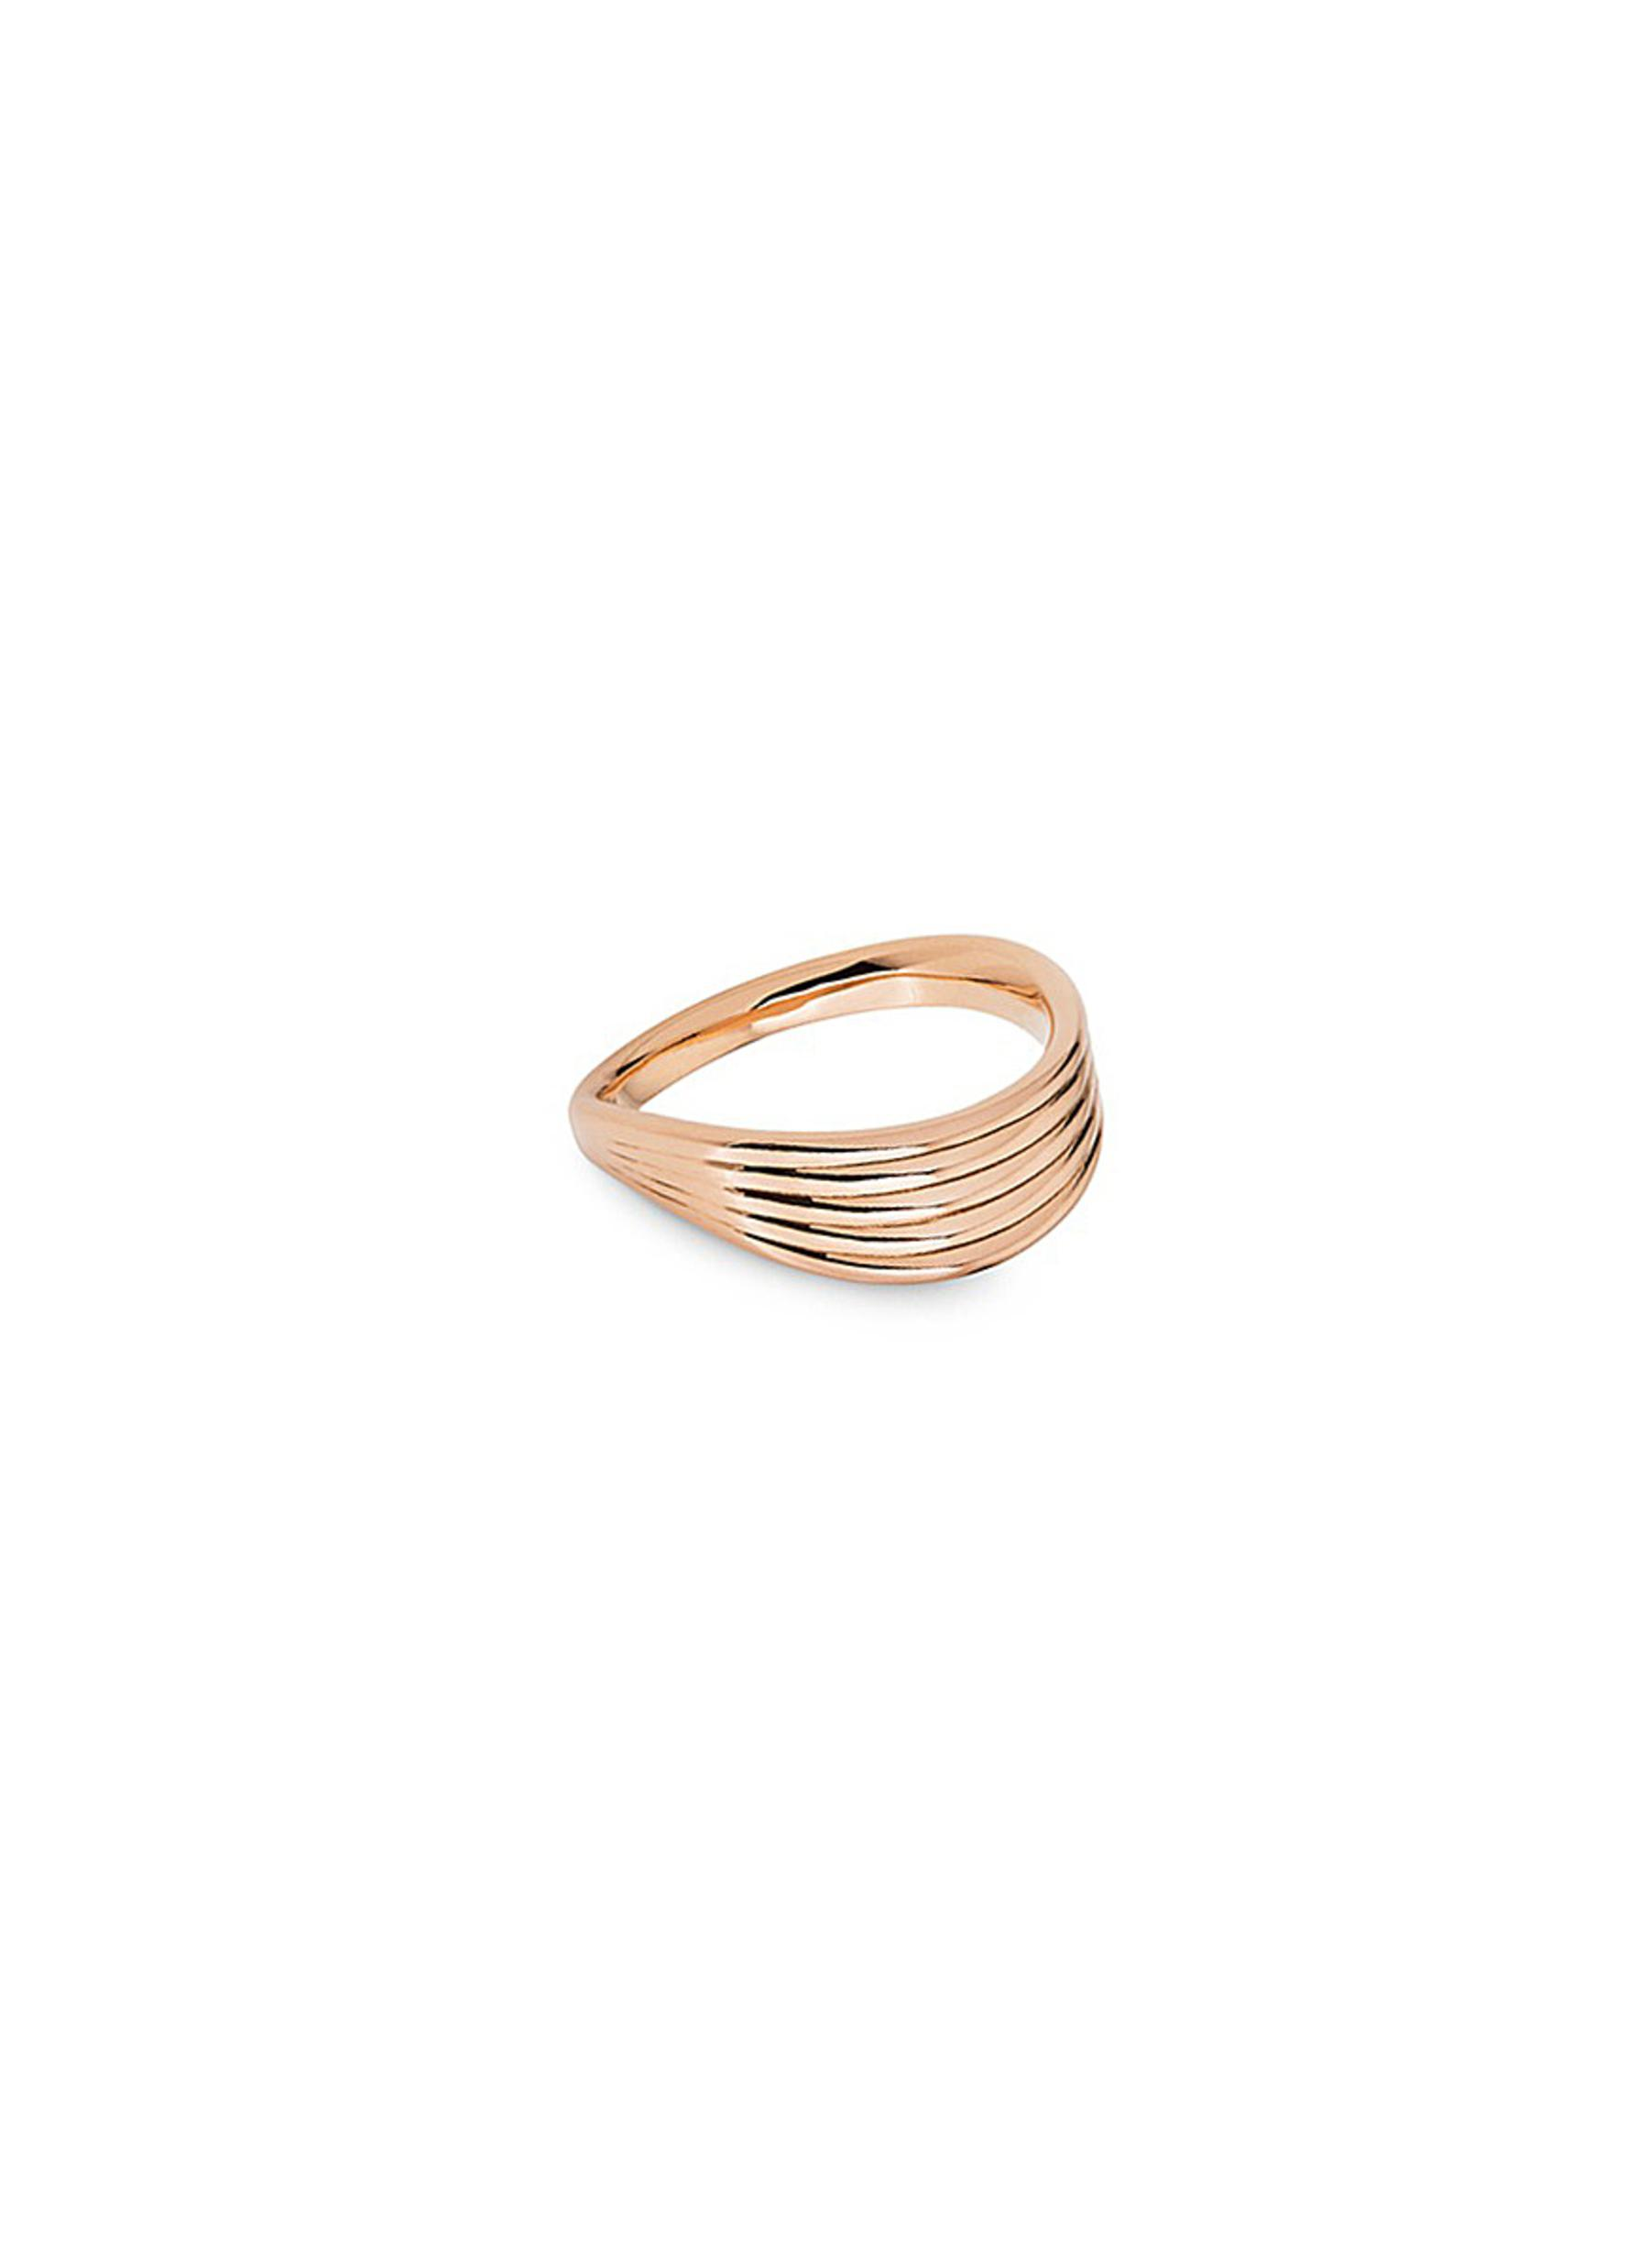 Stream Lines 18k rose gold ring by Fernando Jorge